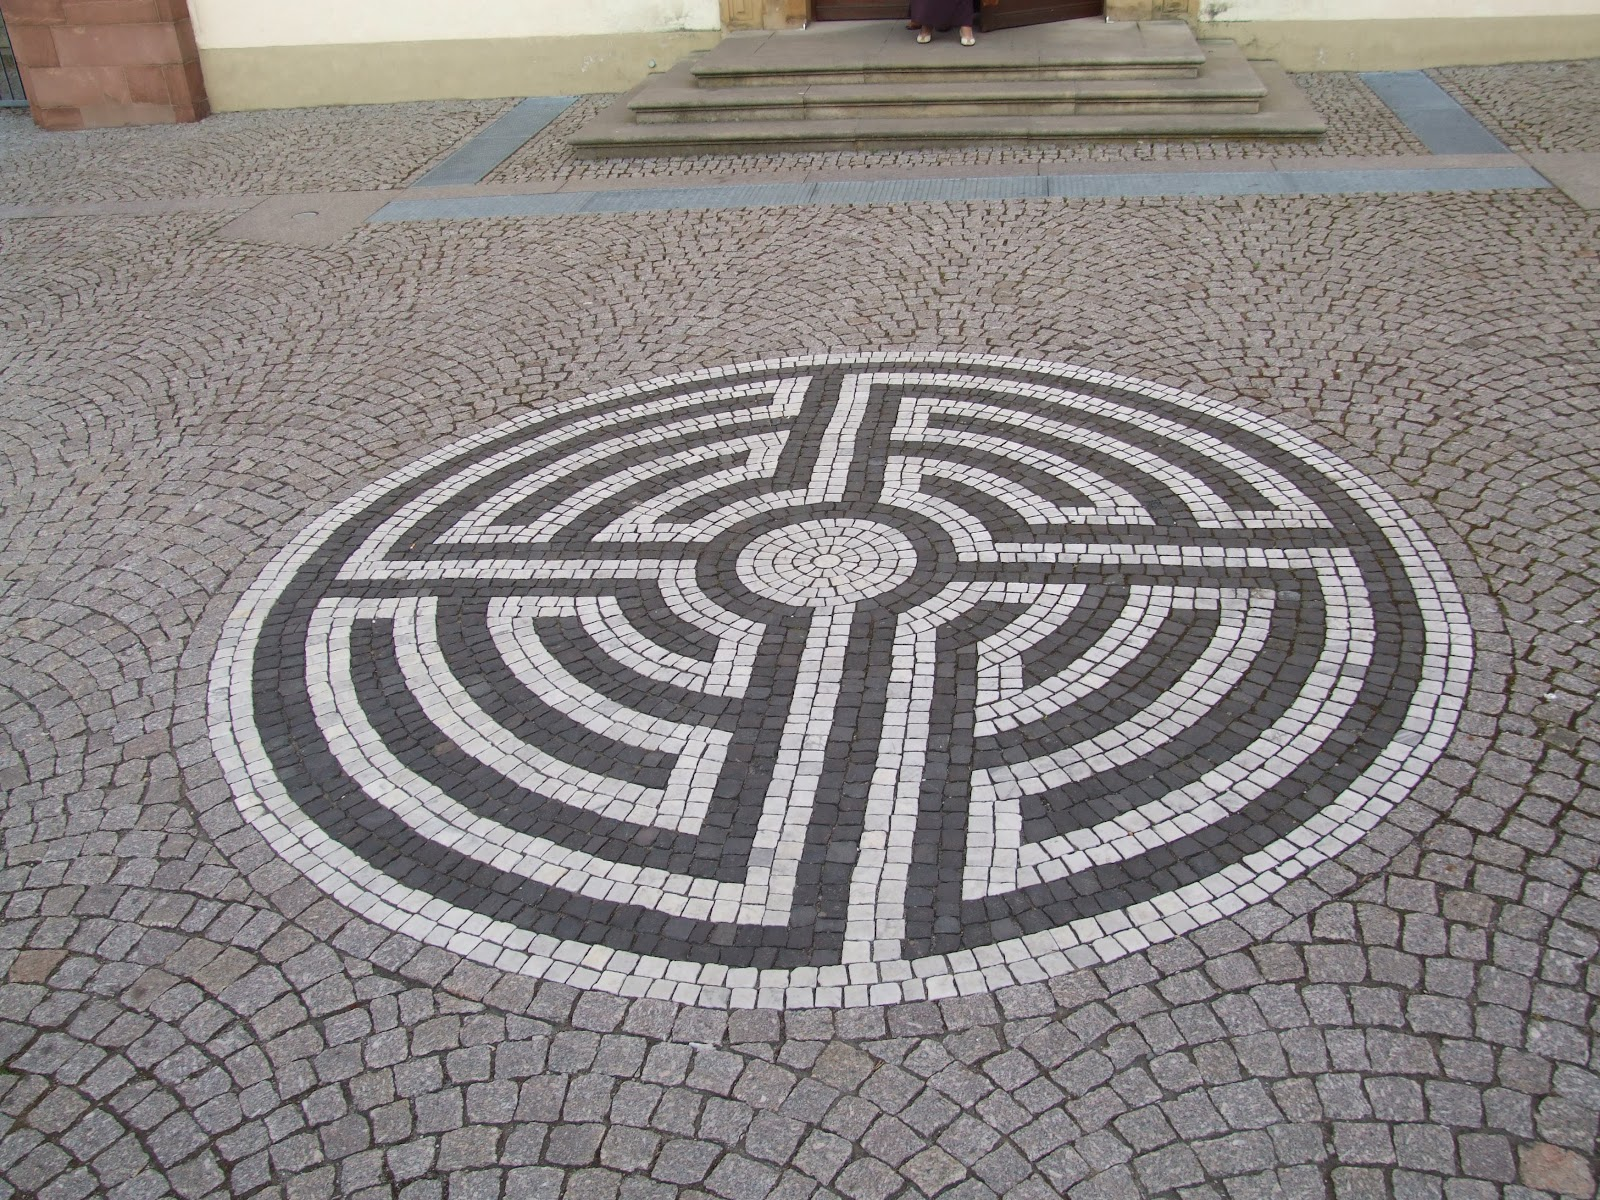 File:Labyrinth vor St.